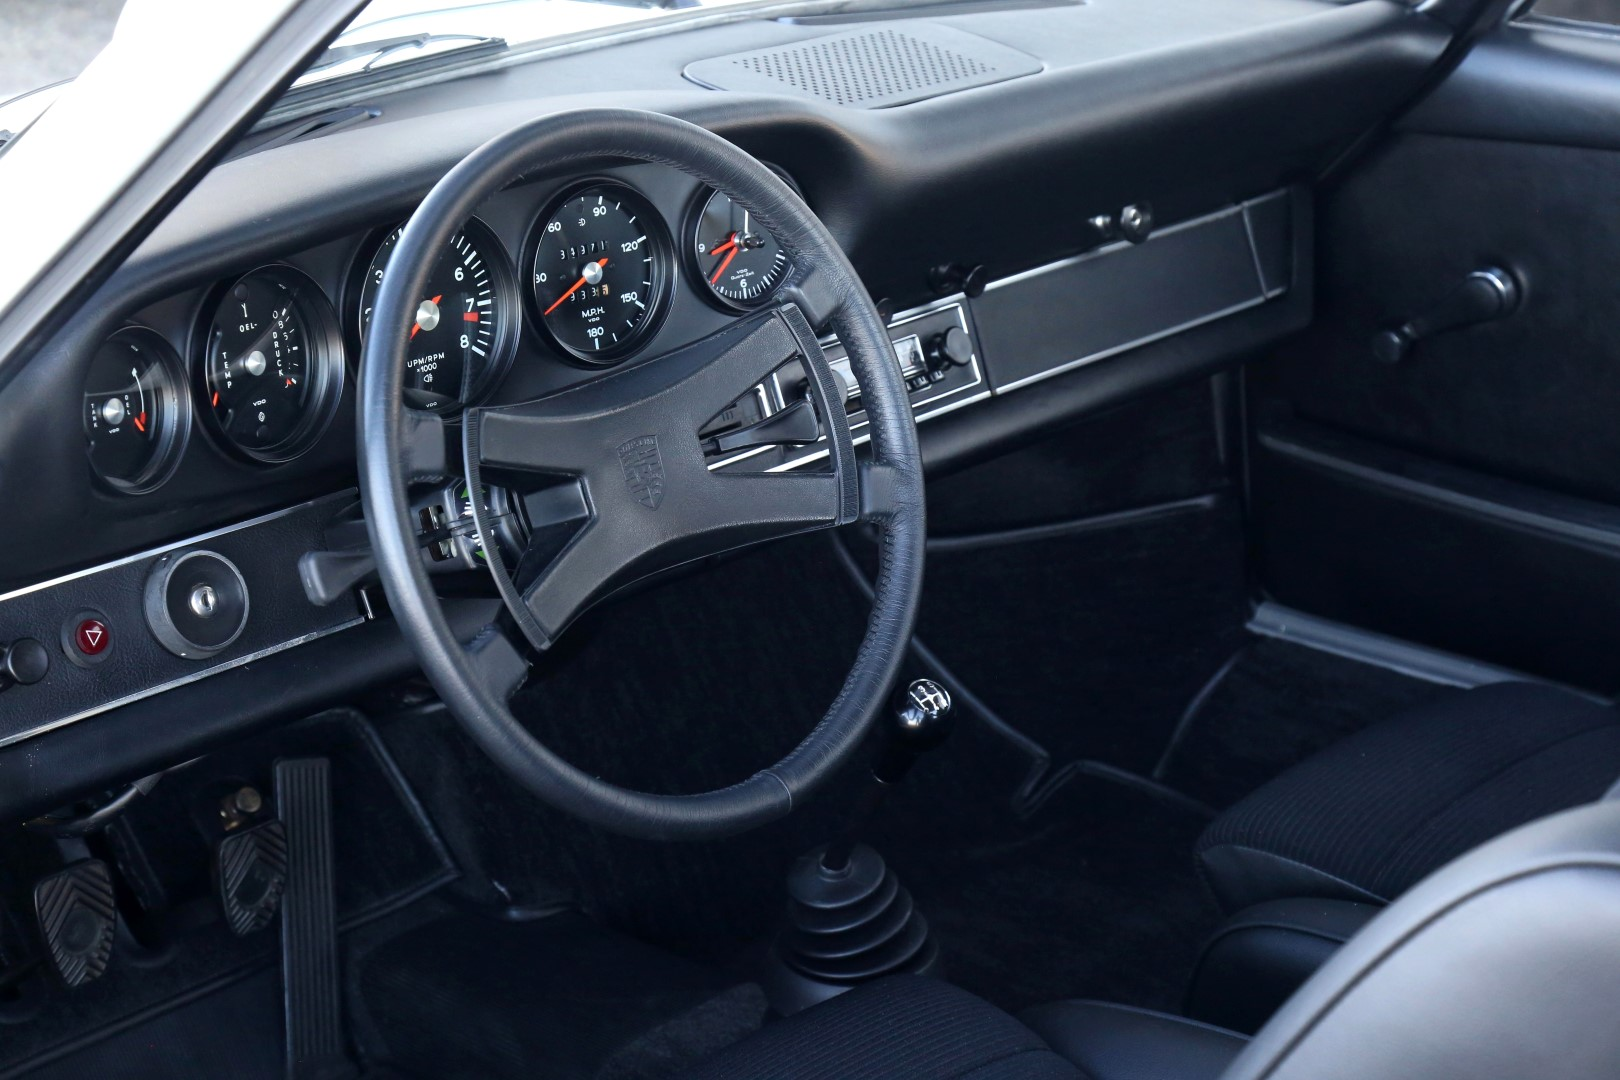 Porsche-911-Carrera-RS-2.7-1973-for-sale-55